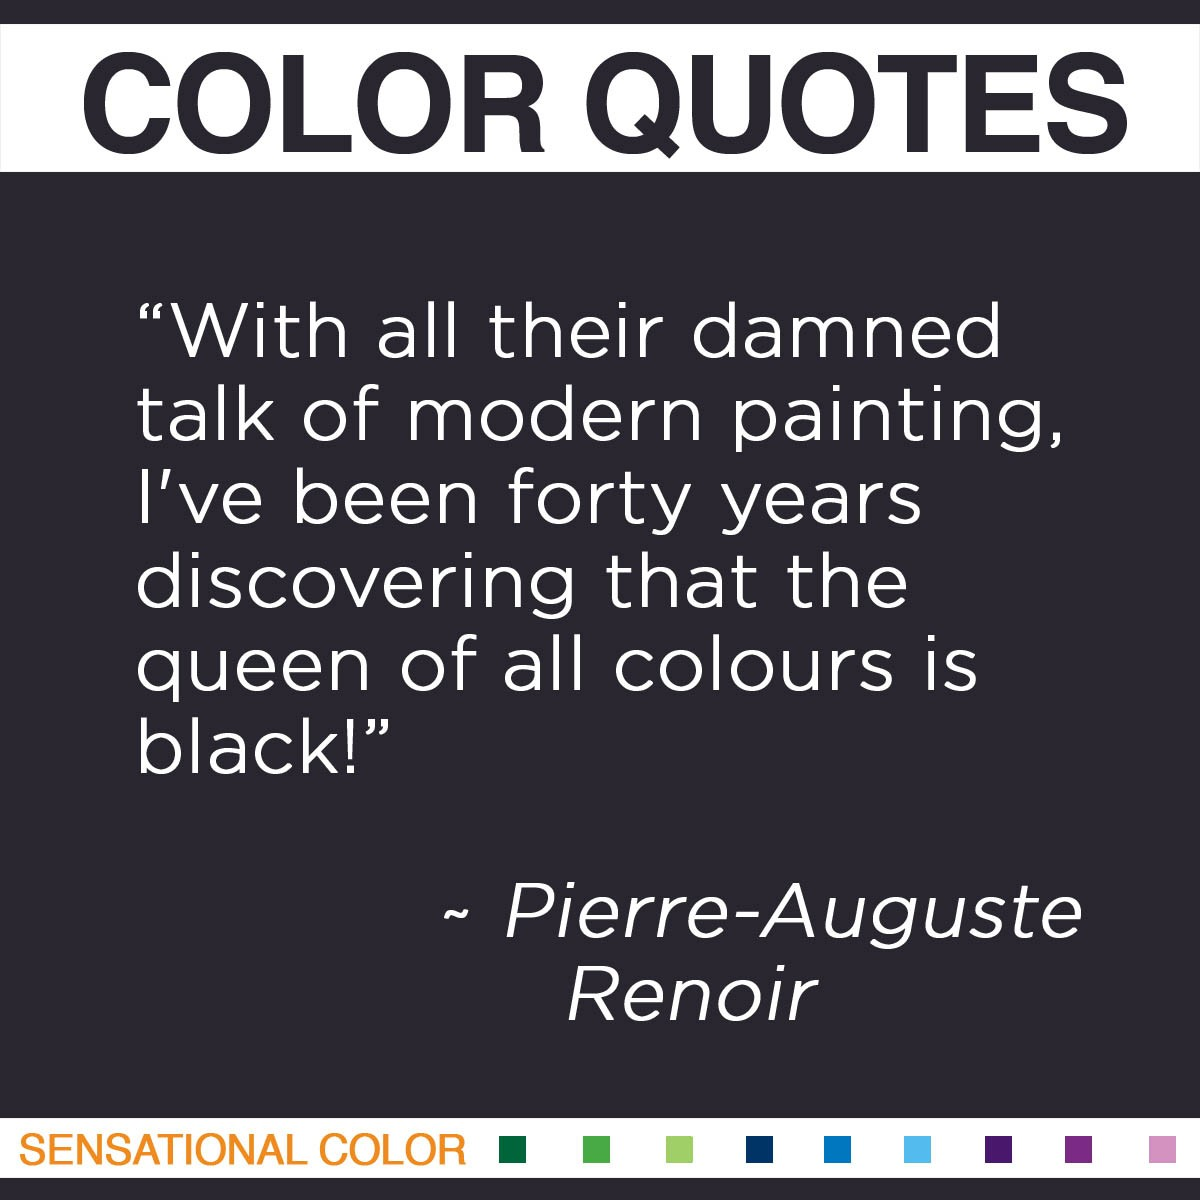 """With all their damned talk of modern painting, I've been forty years discovering that the queen of all colours is black!"" - Pierre-Auguste Renoir"